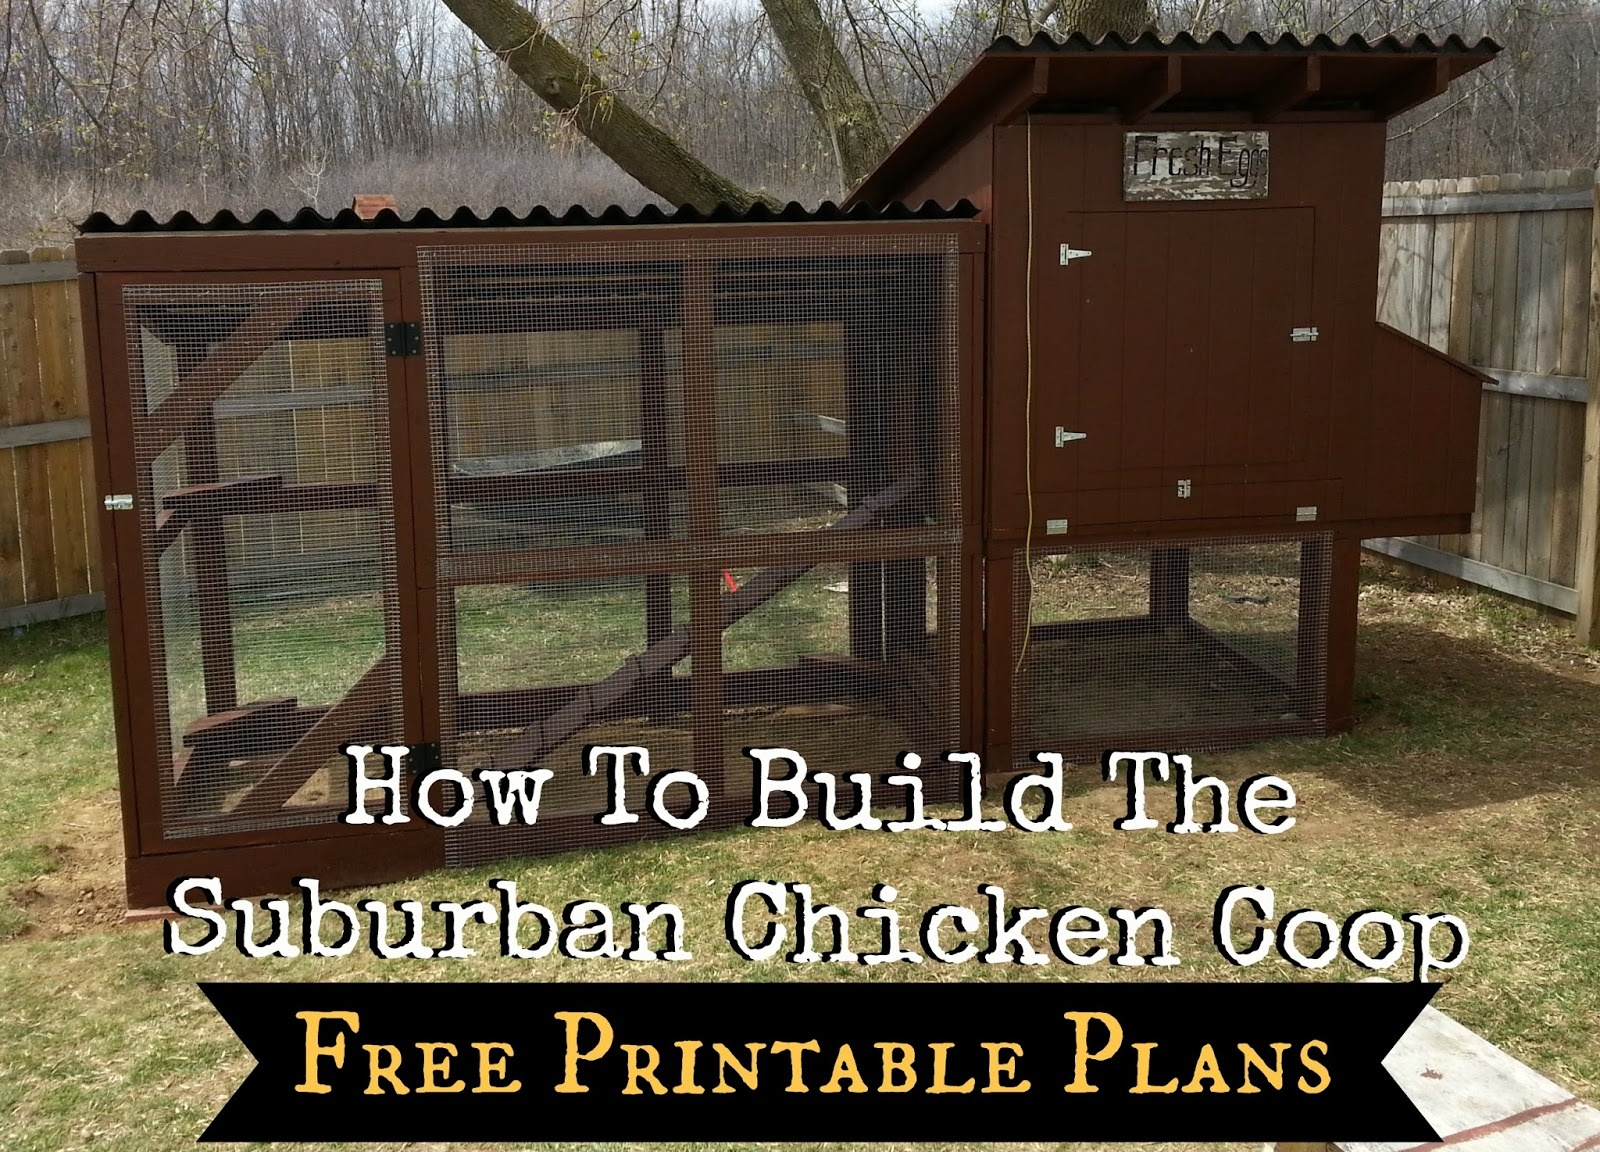 How To Build The Simple Suburban Chicken Coop - Free Printable Plans - Free Printable Chicken Coop Plans